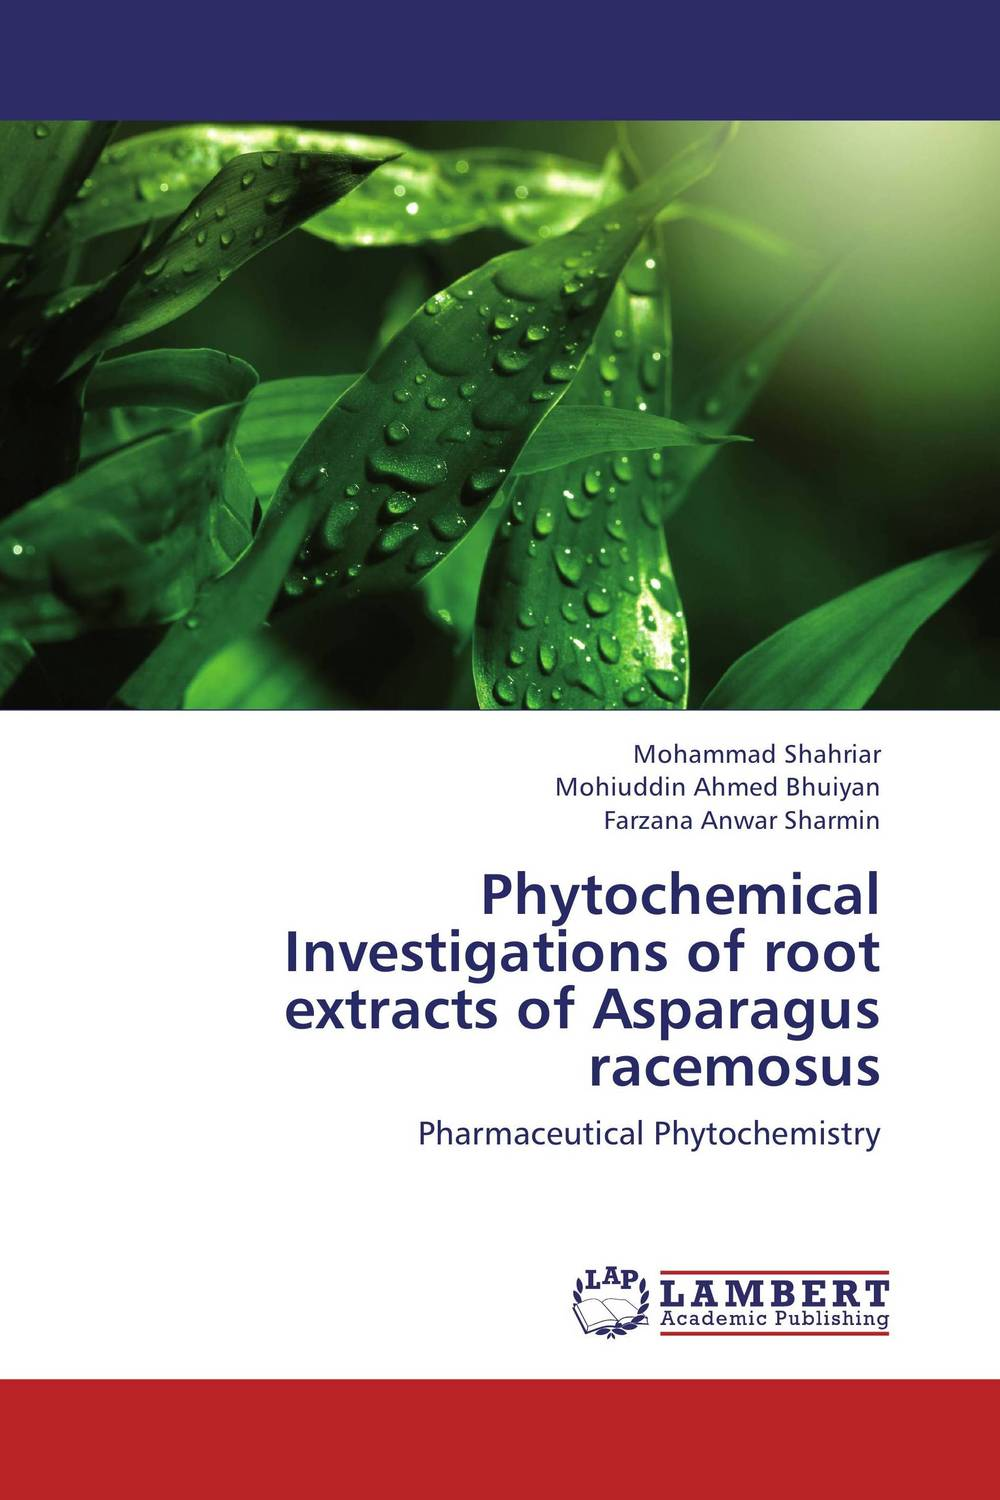 Phytochemical Investigations of root extracts of Asparagus racemosus